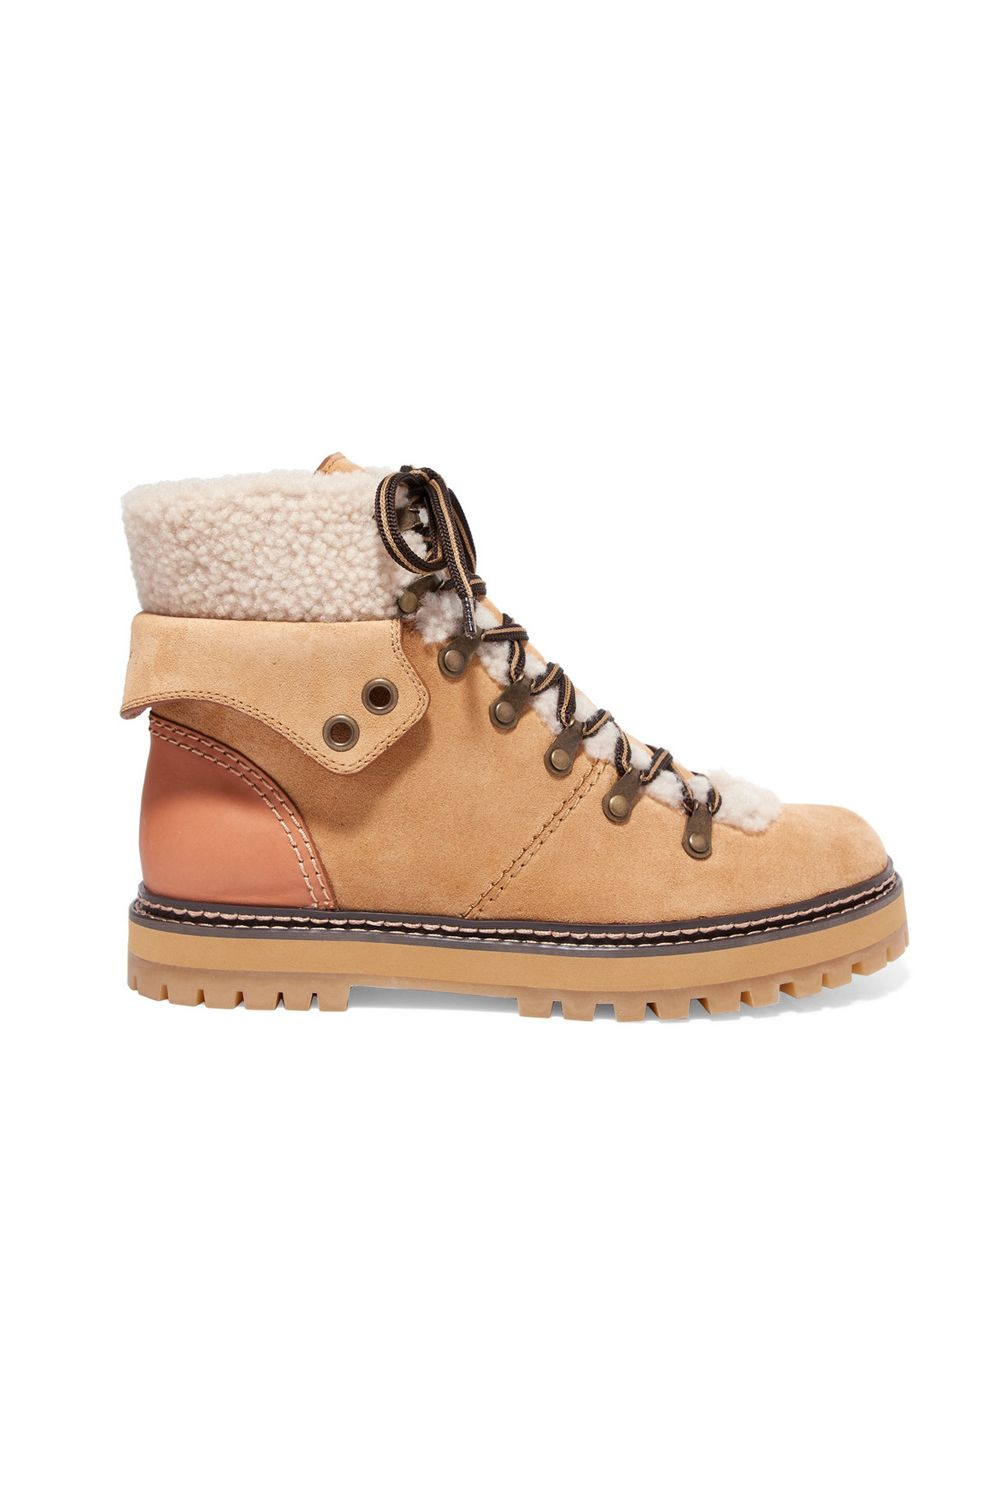 7ea2f7d903f9 15 Best Snow Boots For Women 2018 - Stylish Warm Winter Boots